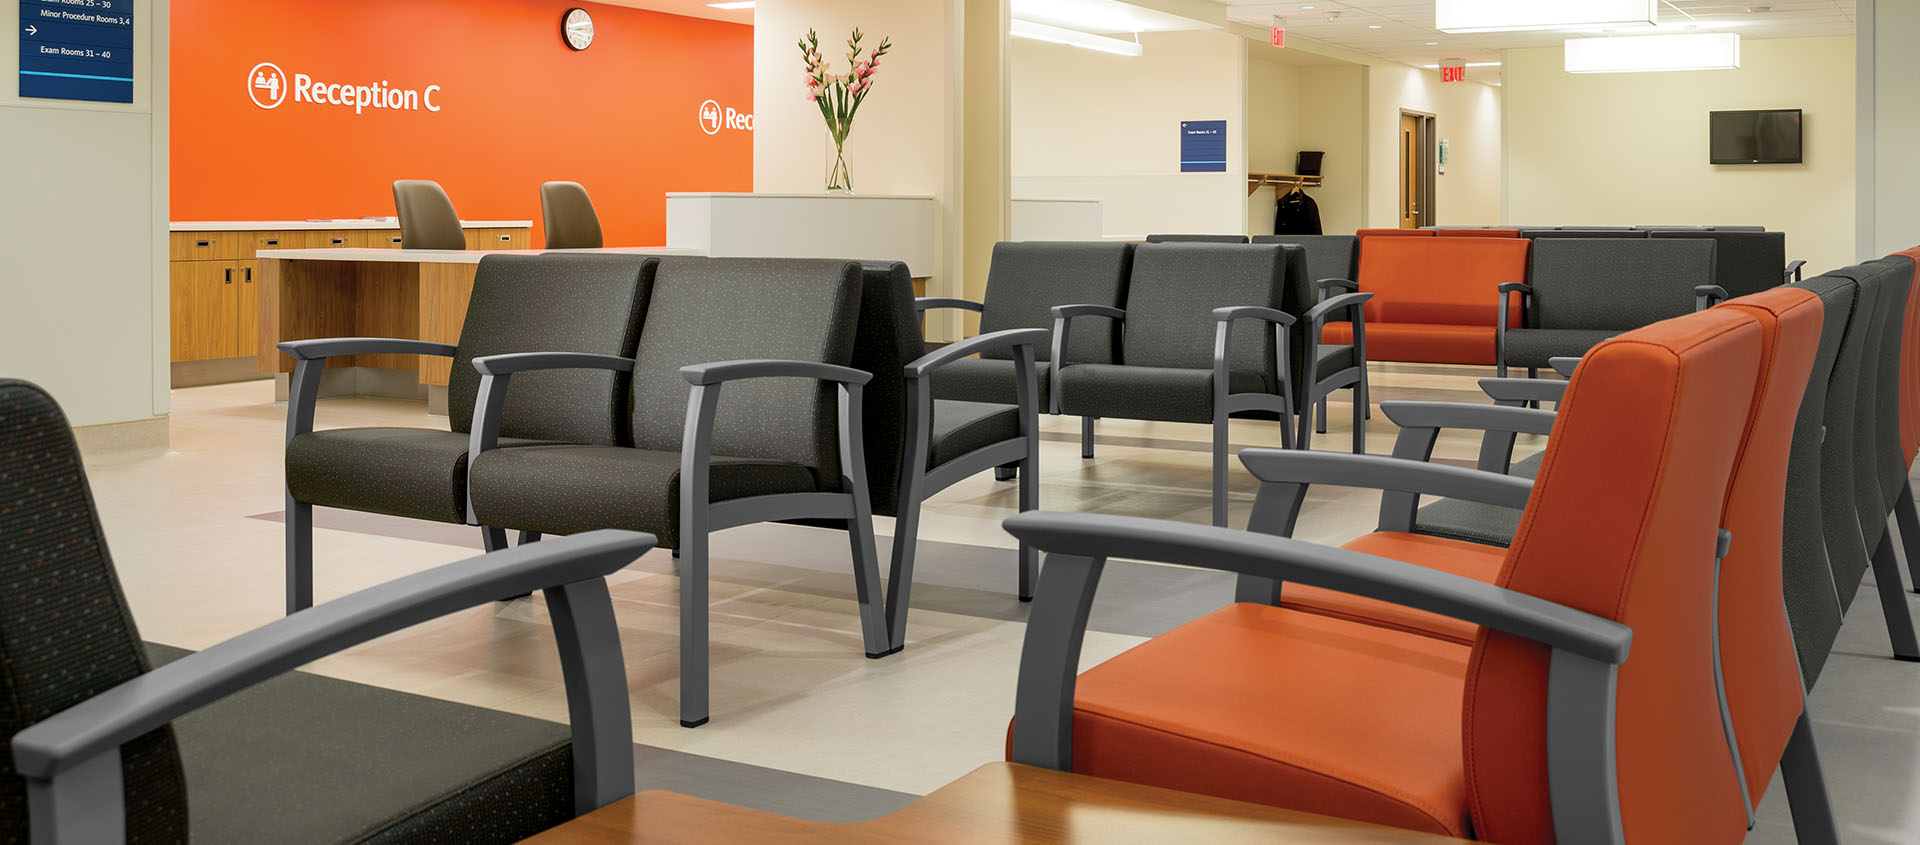 waiting room chairs american flag chair cushions medical practice furniture virginia maryland dc all